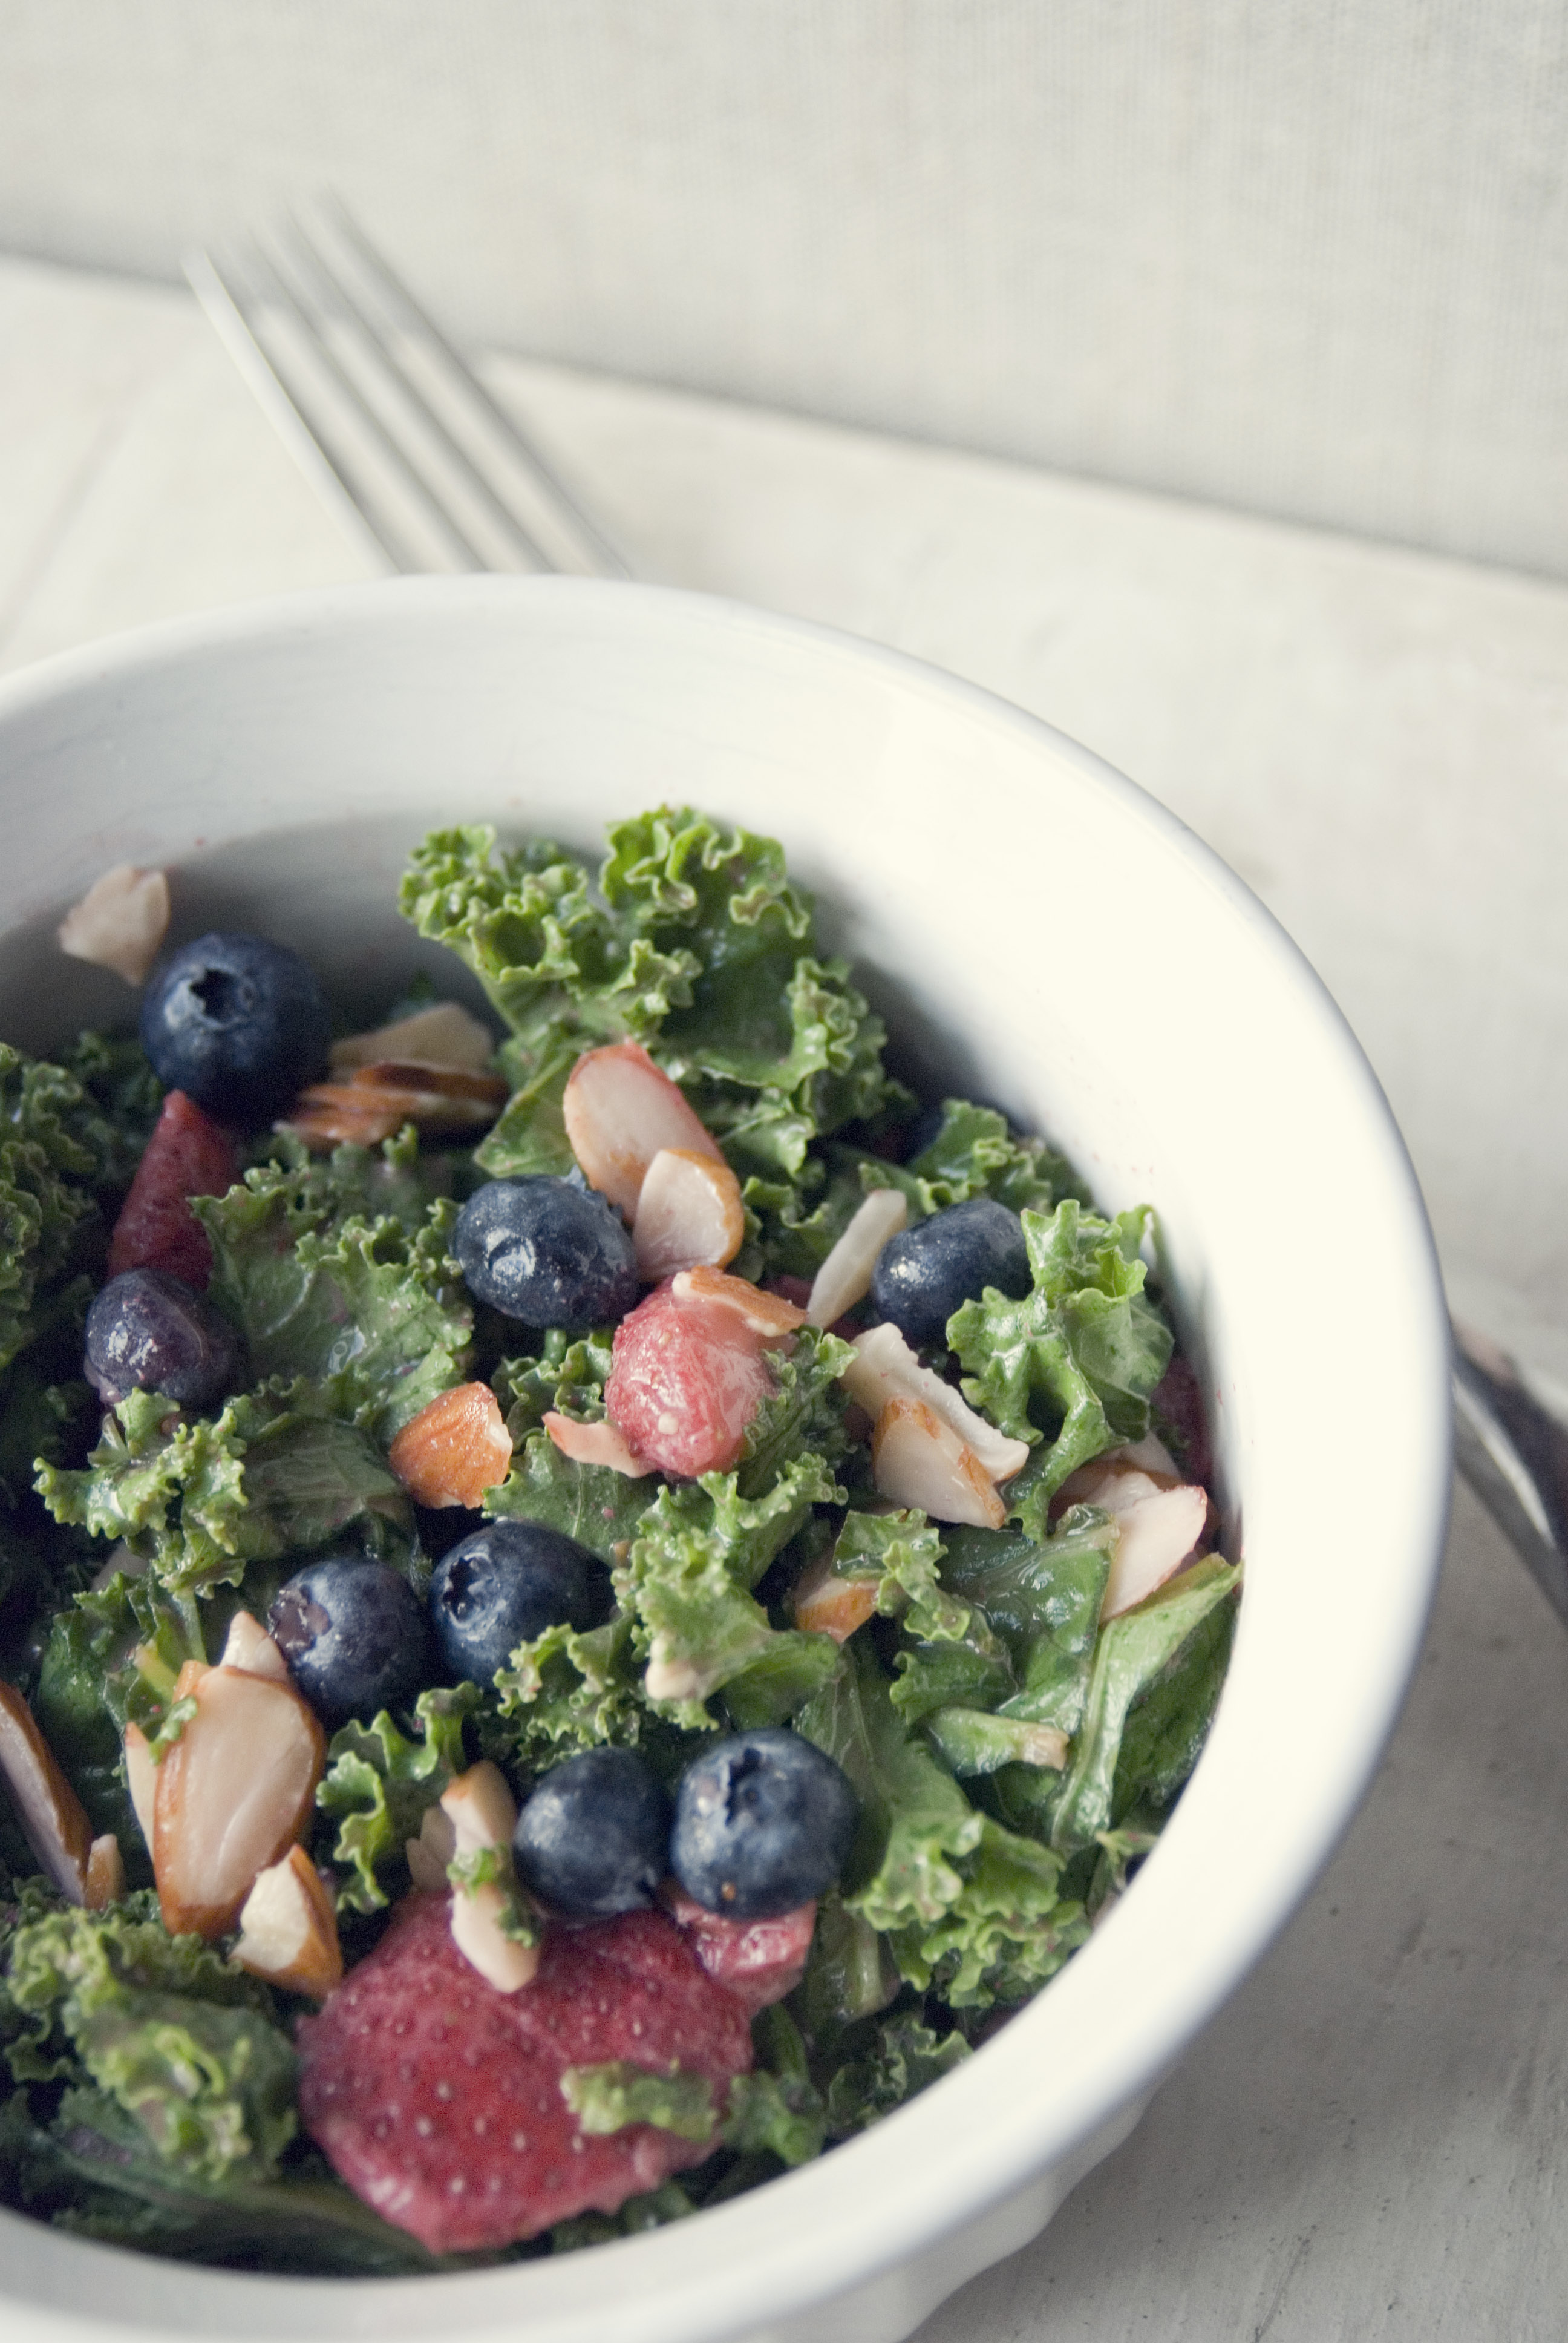 clean_refreshing_alakaline_kale_salad_2